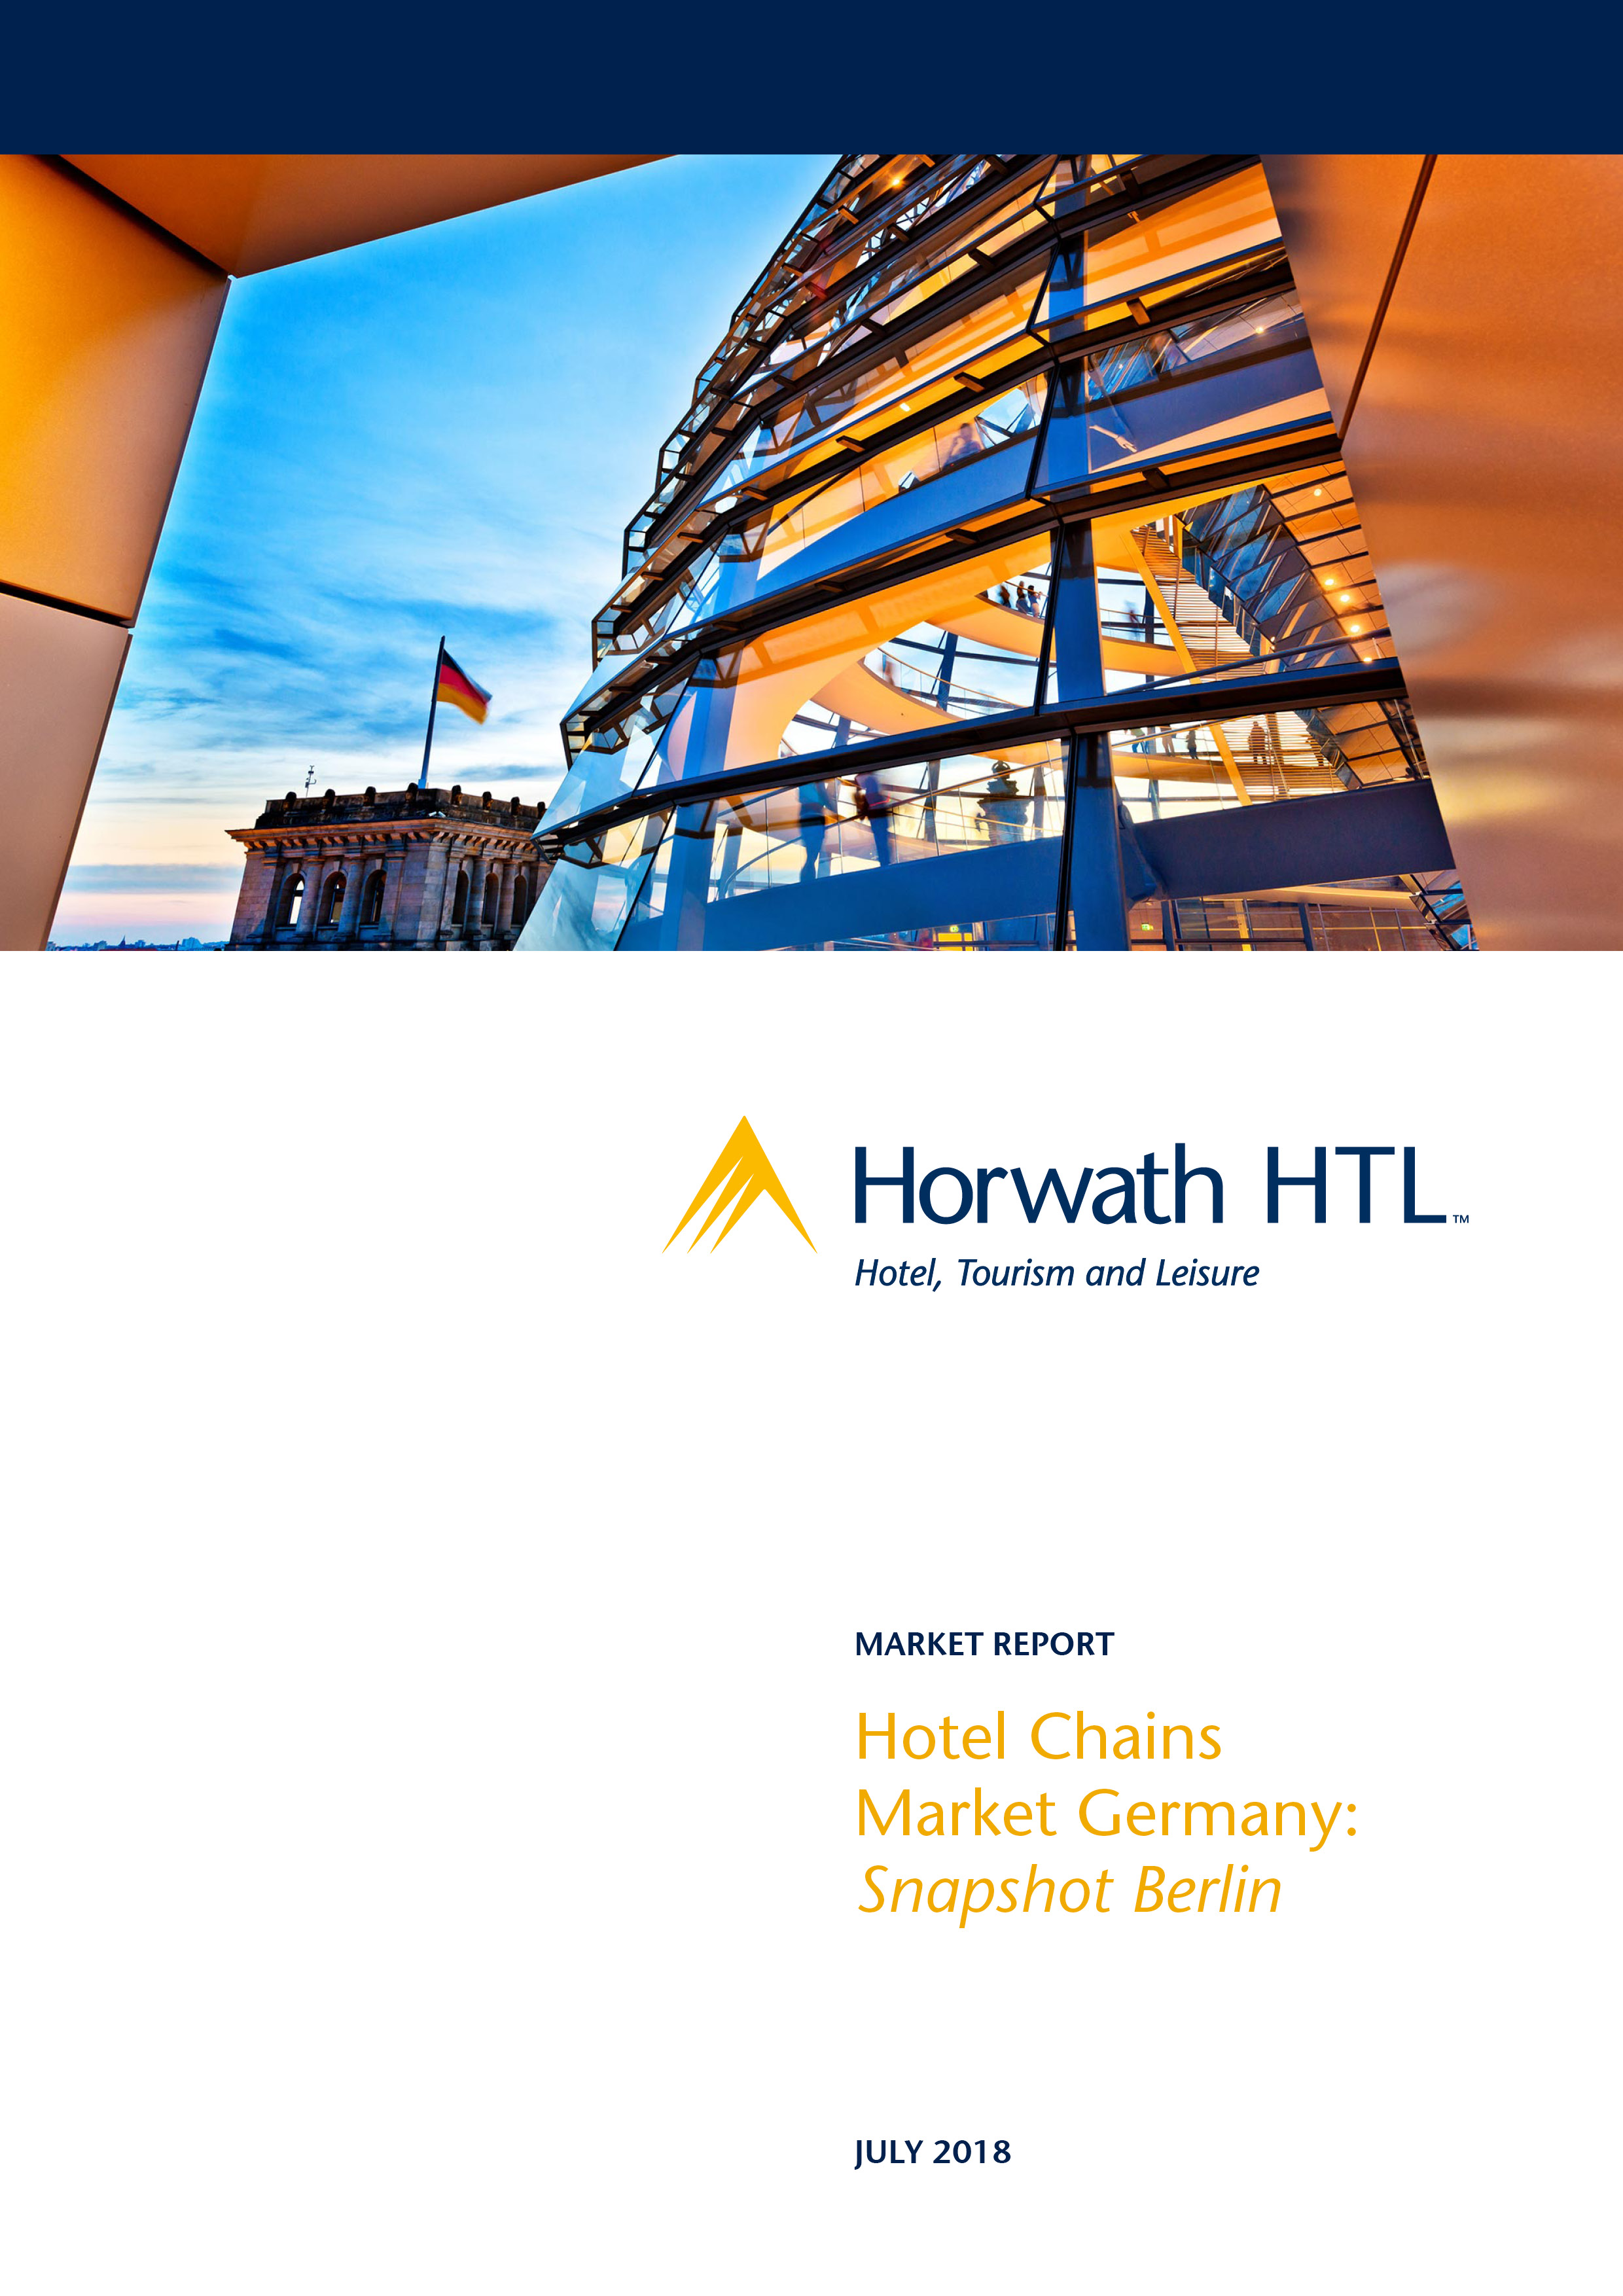 Market Report: Hotel Chains Market Germany; Snapshot Berlin